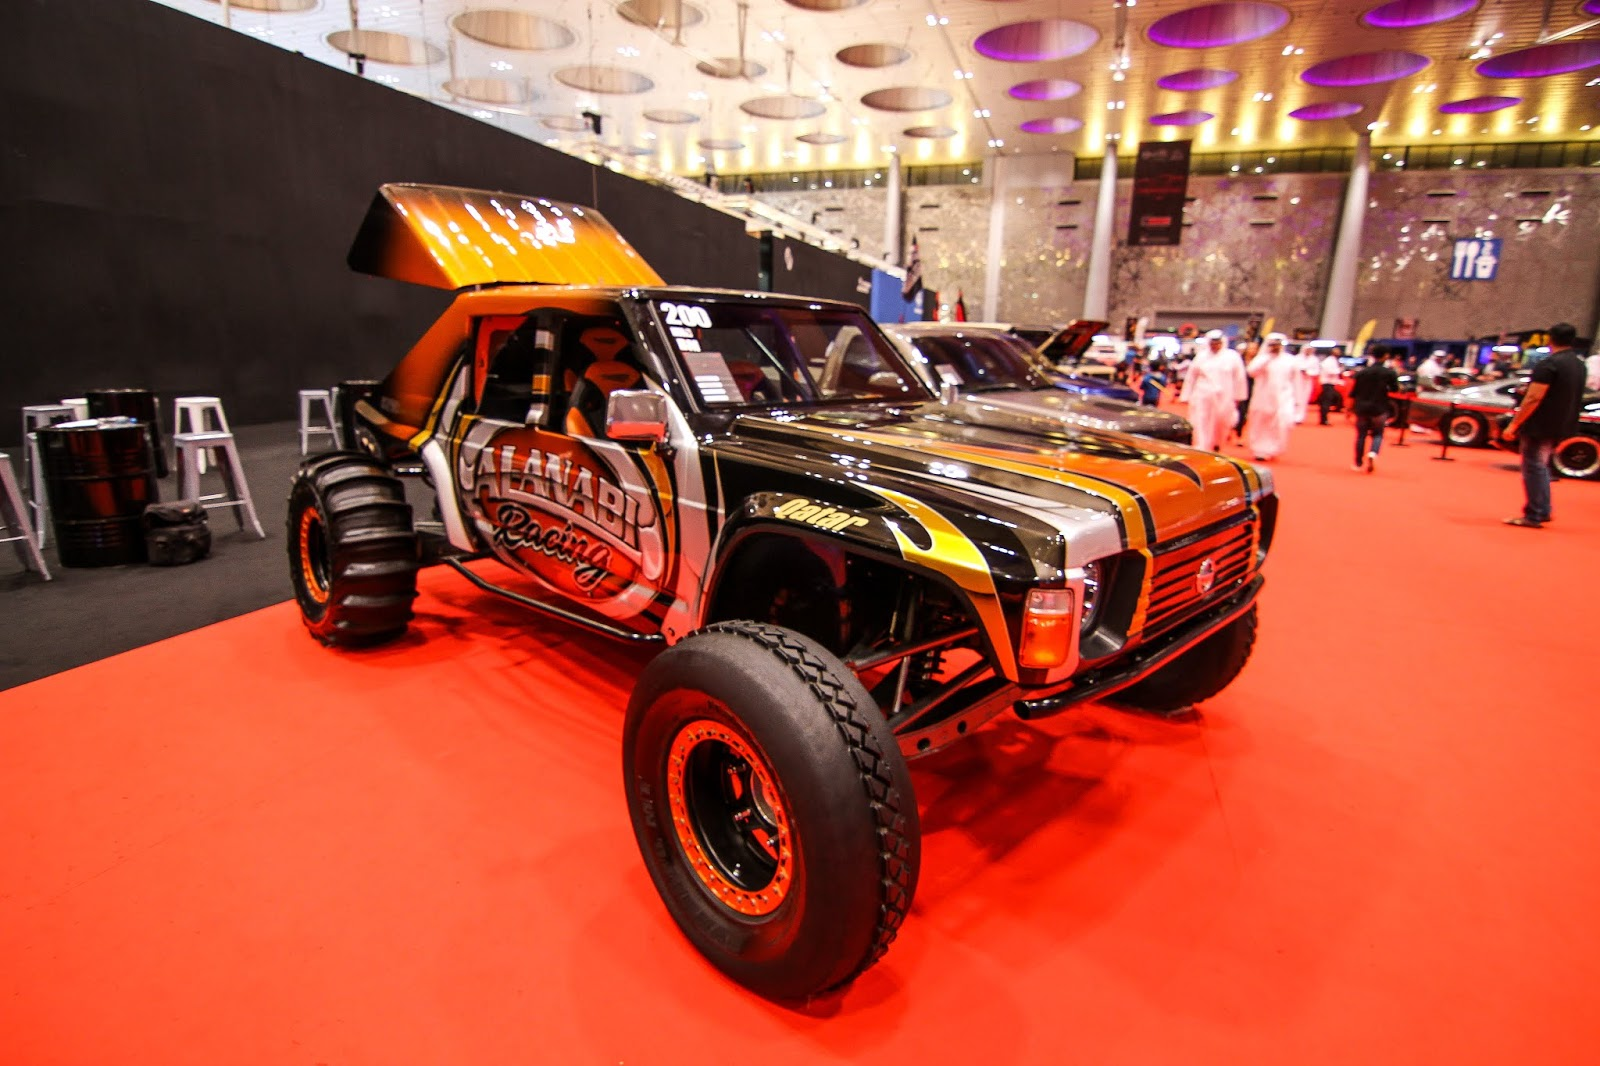 small resolution of baja nissan patrol by joe fab at qatar motor show